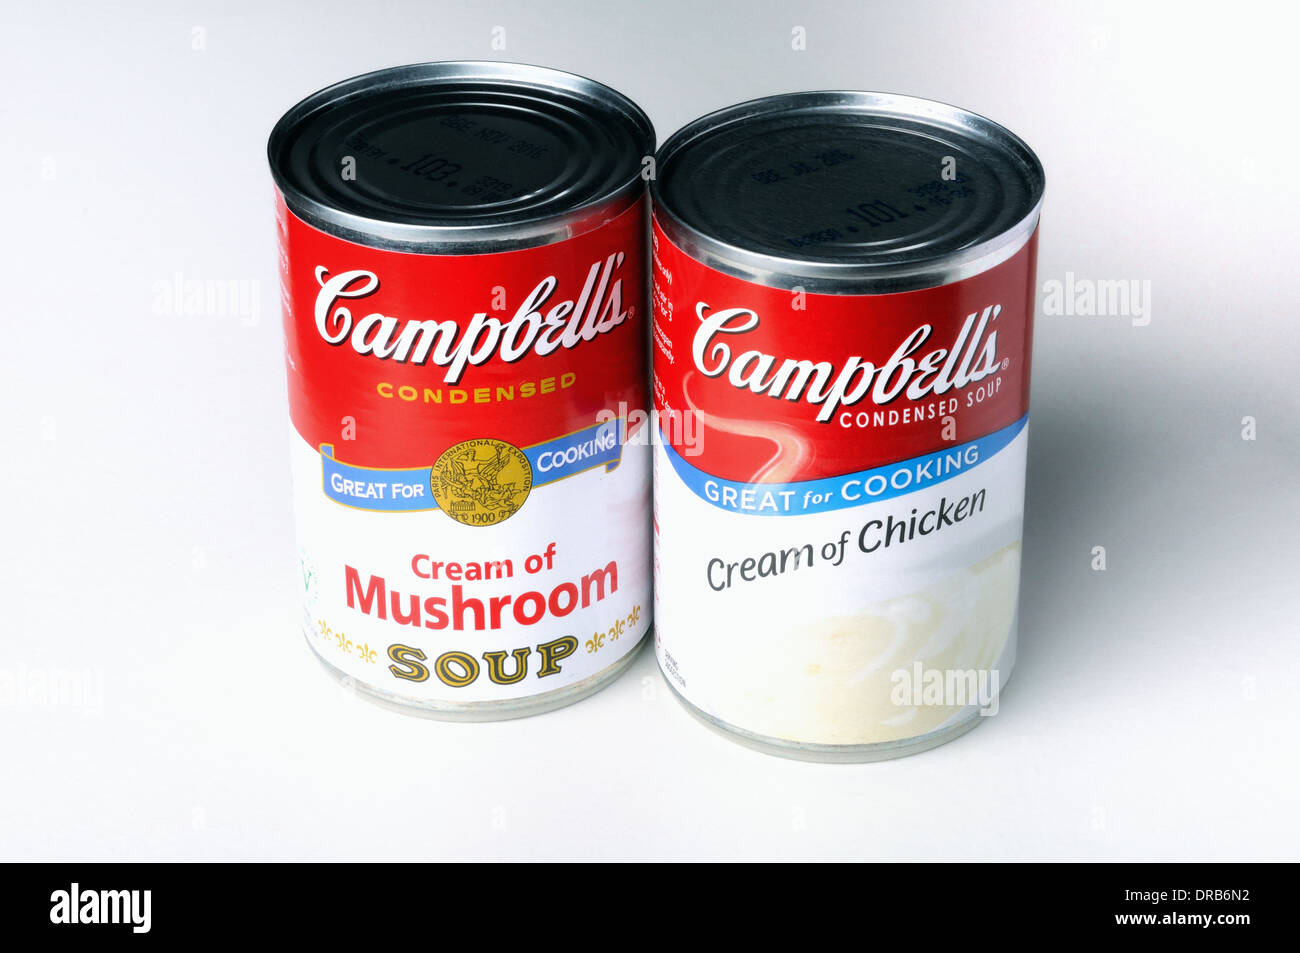 Tins of Campbell's 'cream of' soups on a neutral background. - Stock Image